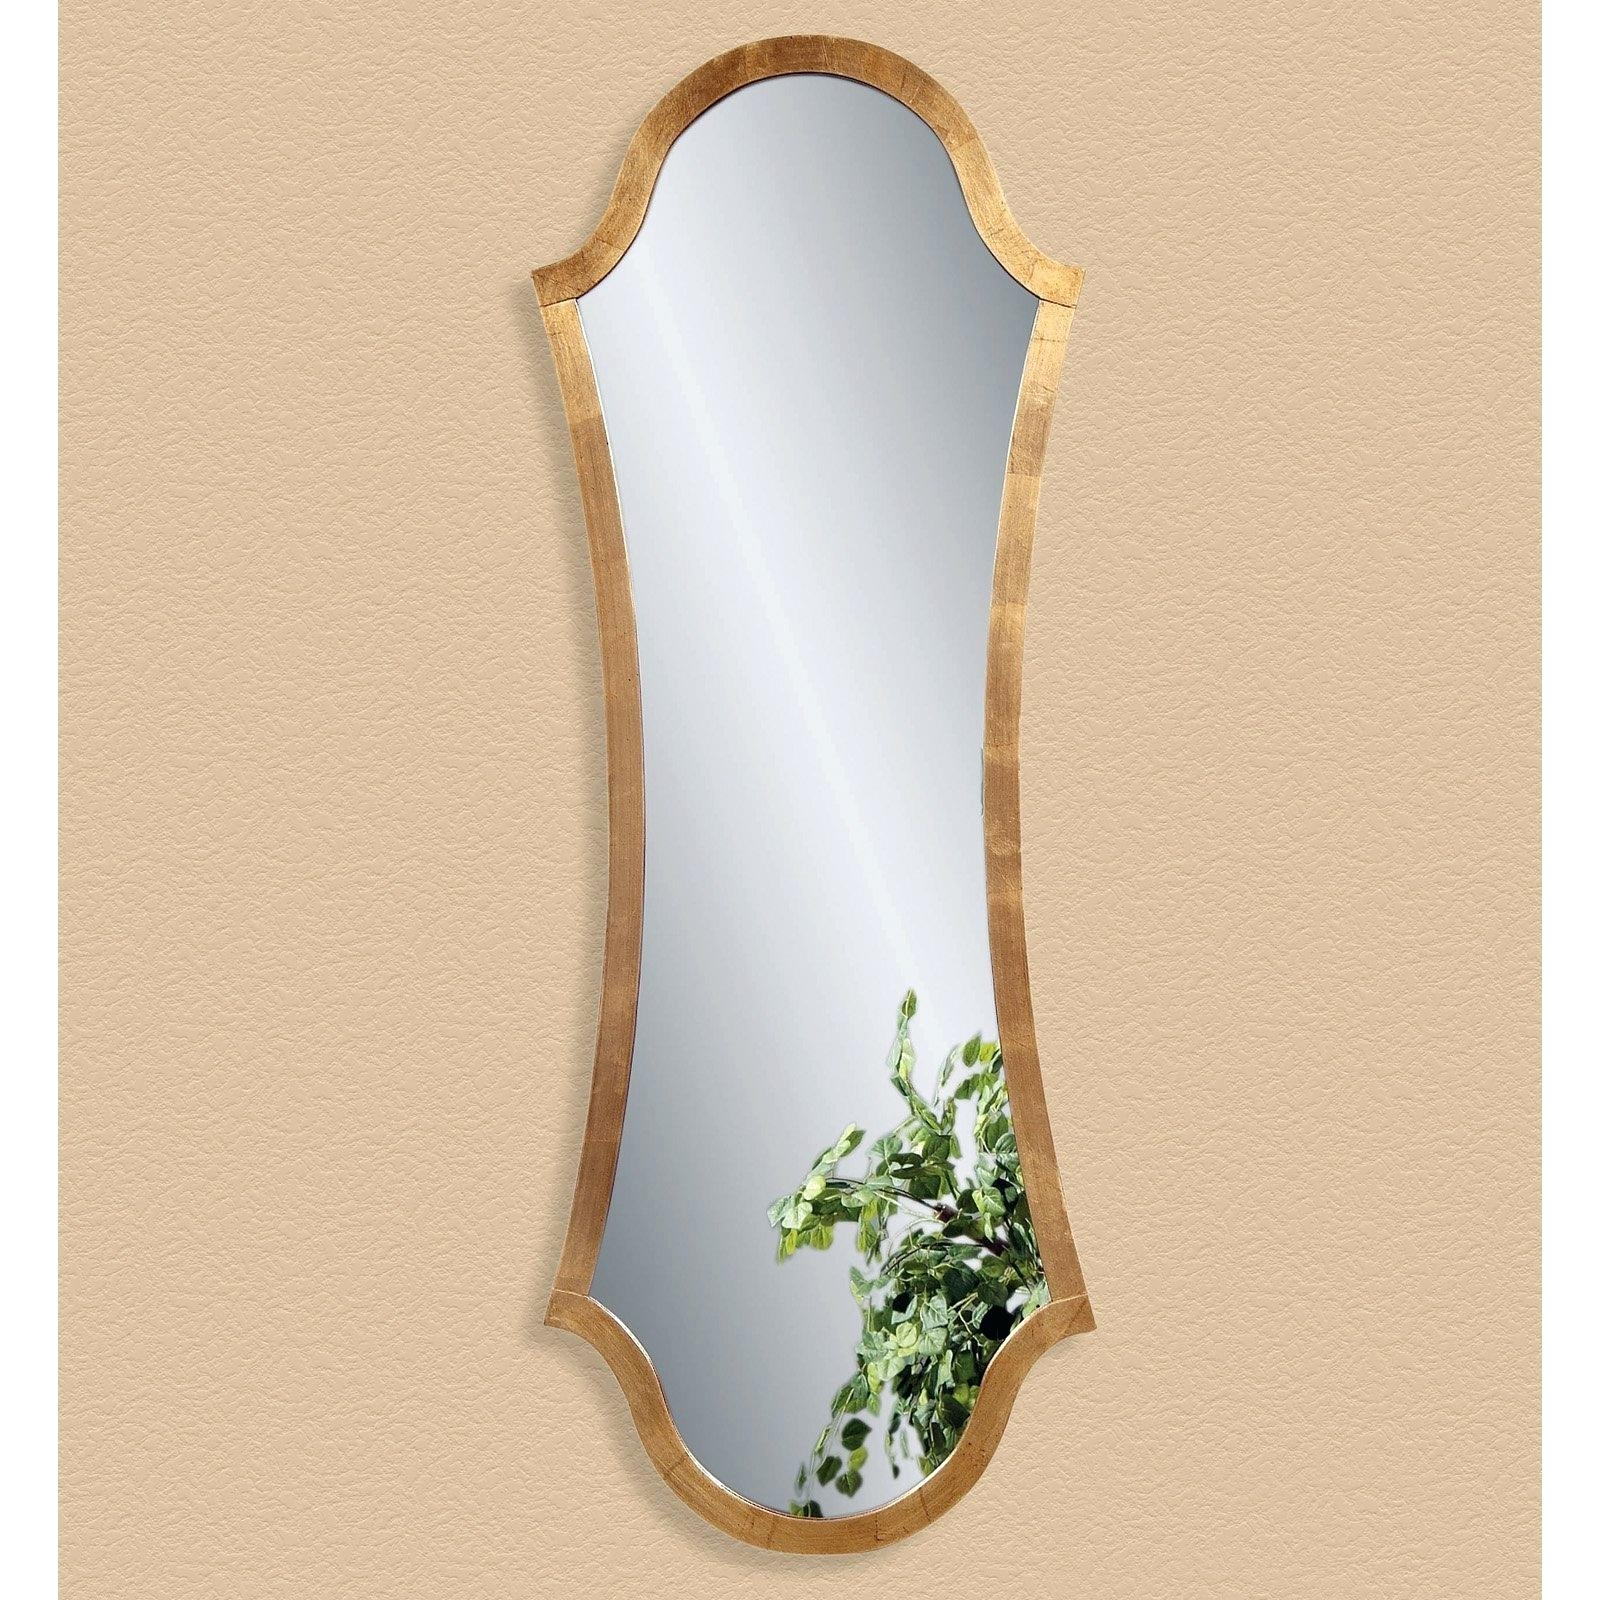 Decorative Full Length Mirror Pitchloveco Within Decorative Full Length Mirror (View 6 of 15)